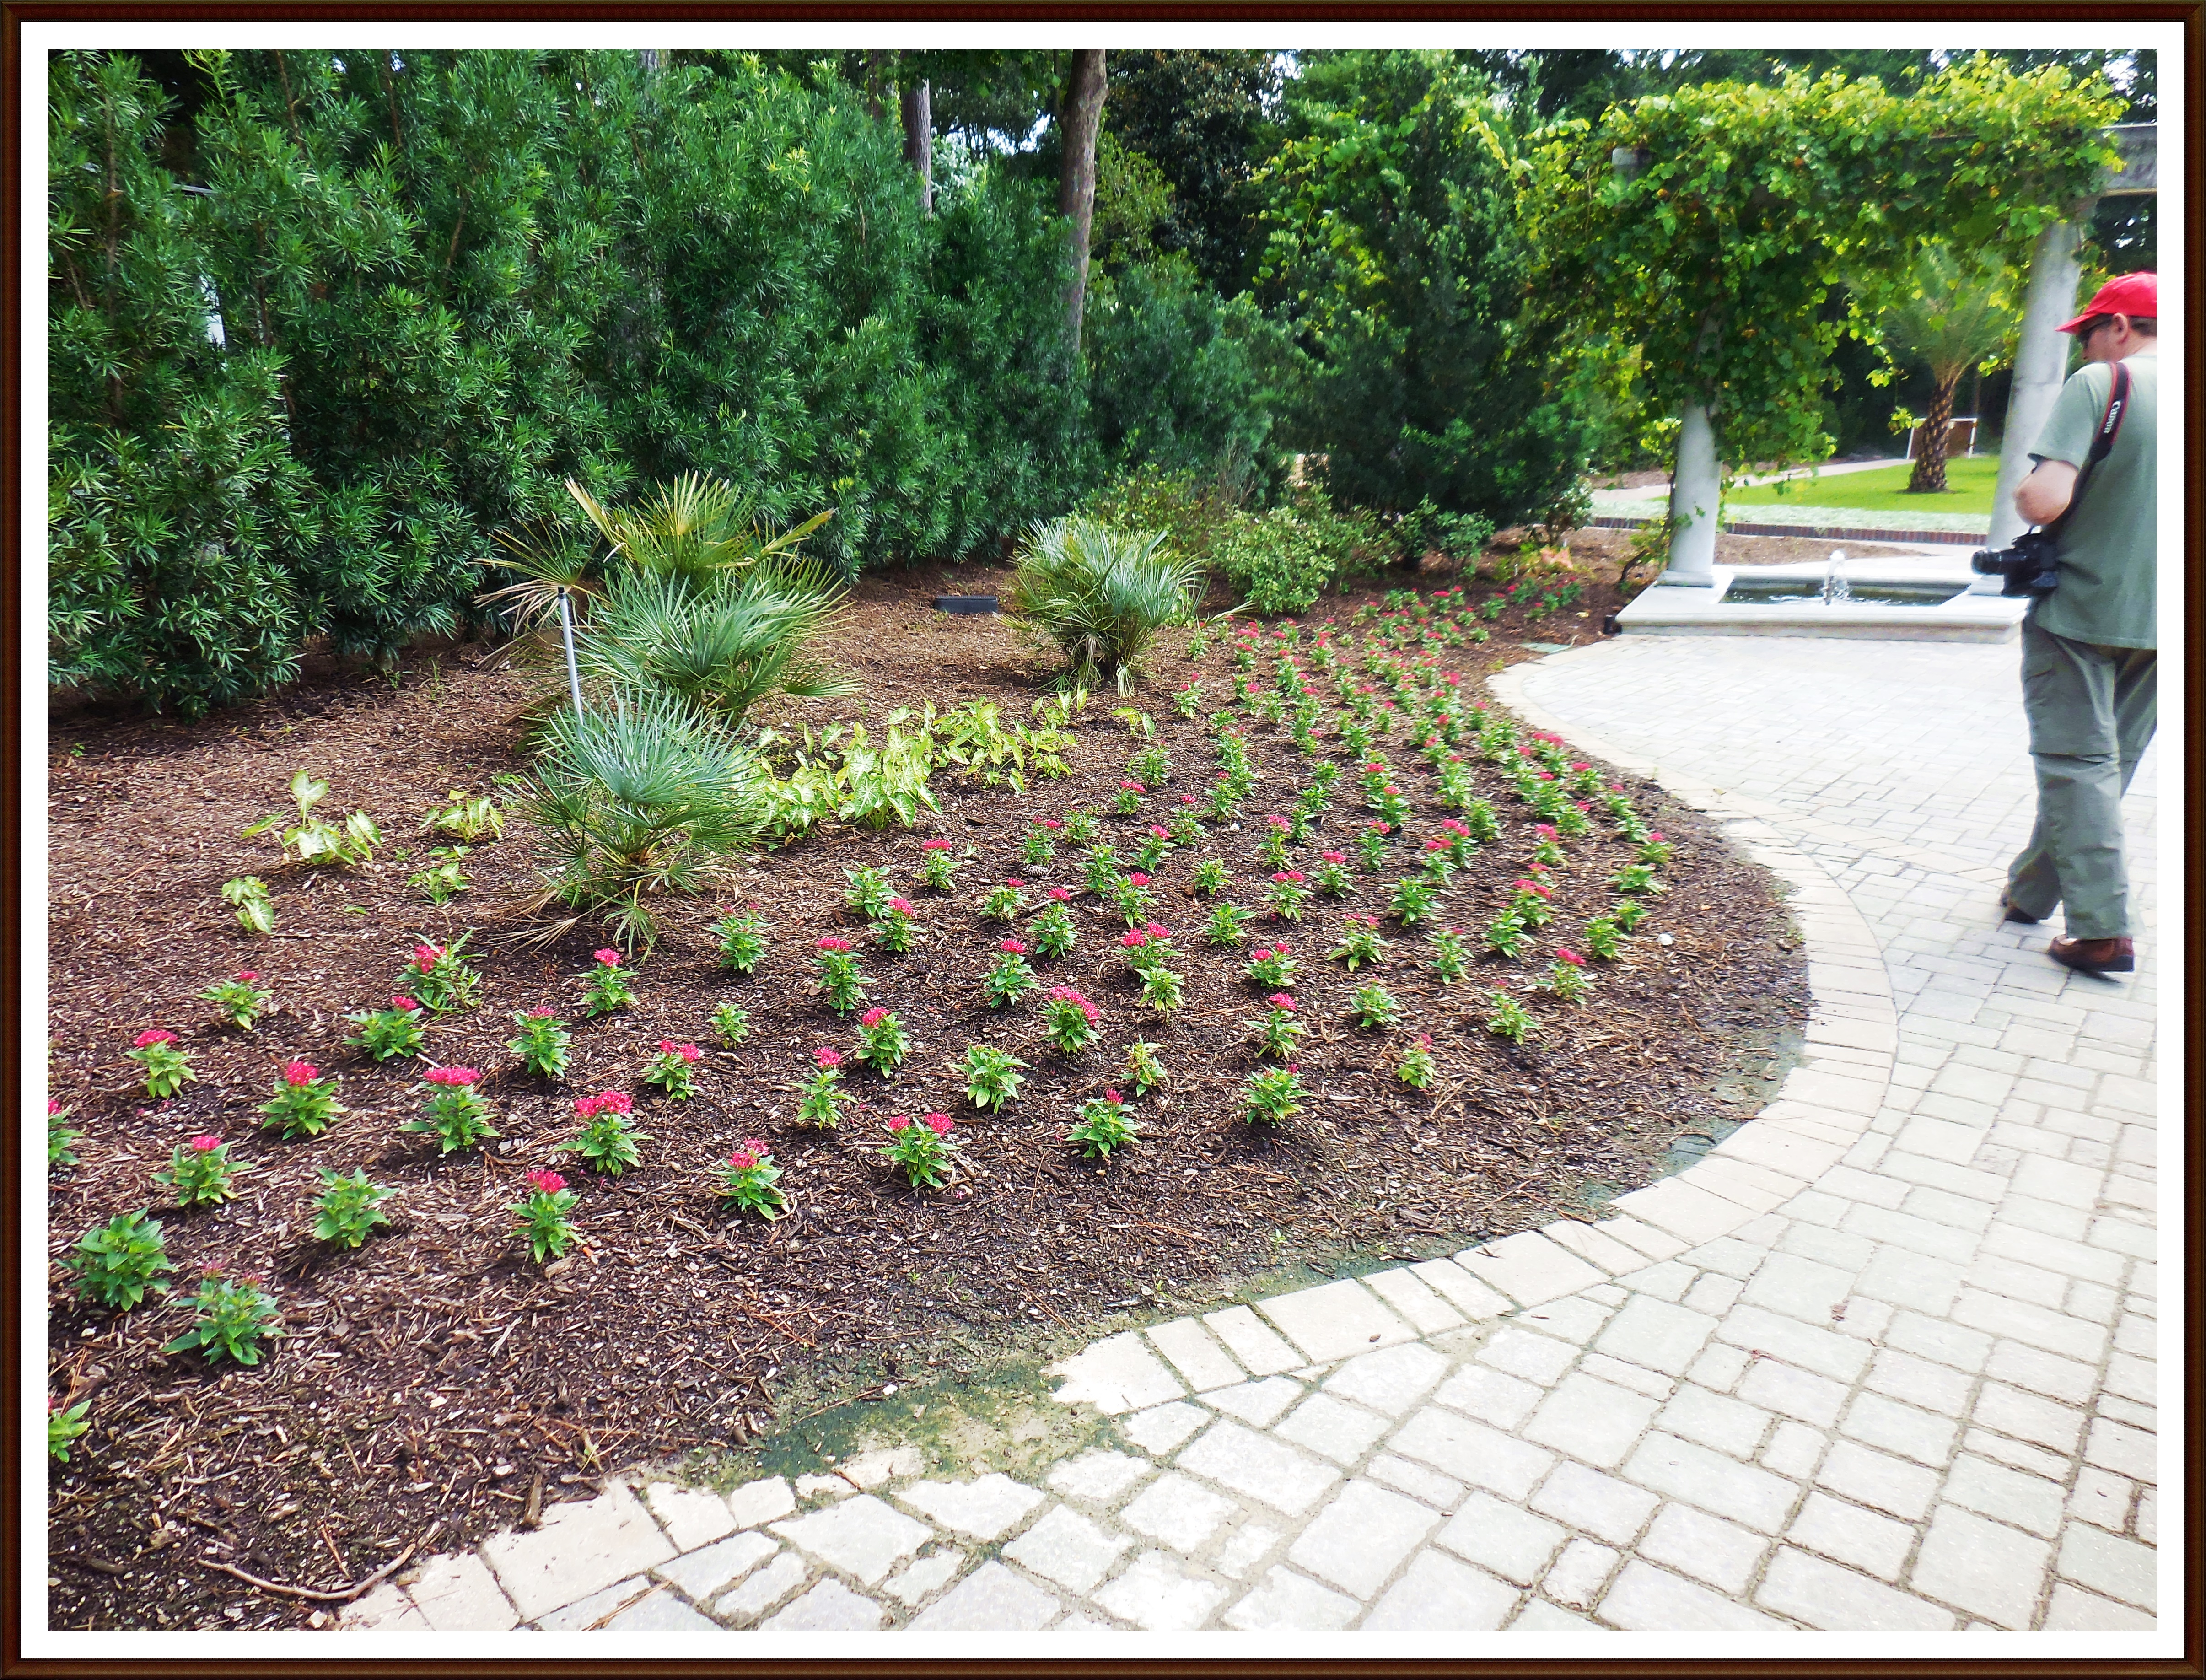 new beds of flowers